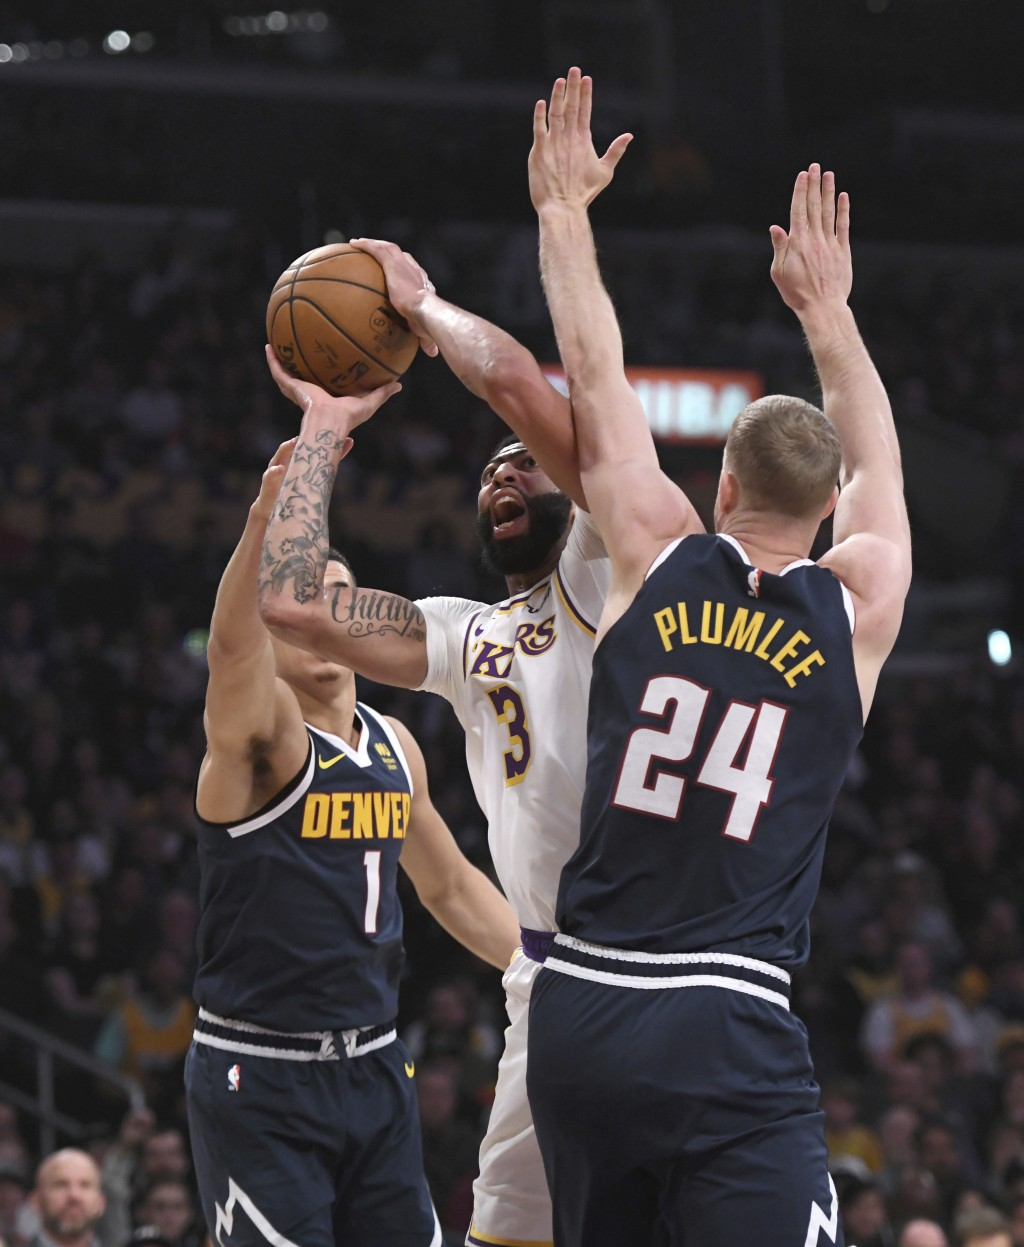 Los Angeles Lakers forward Anthony Davis is fouled as he shoots between Denver Nuggets forward Michael Porter Jr., left, and center Mason Plumlee duri...